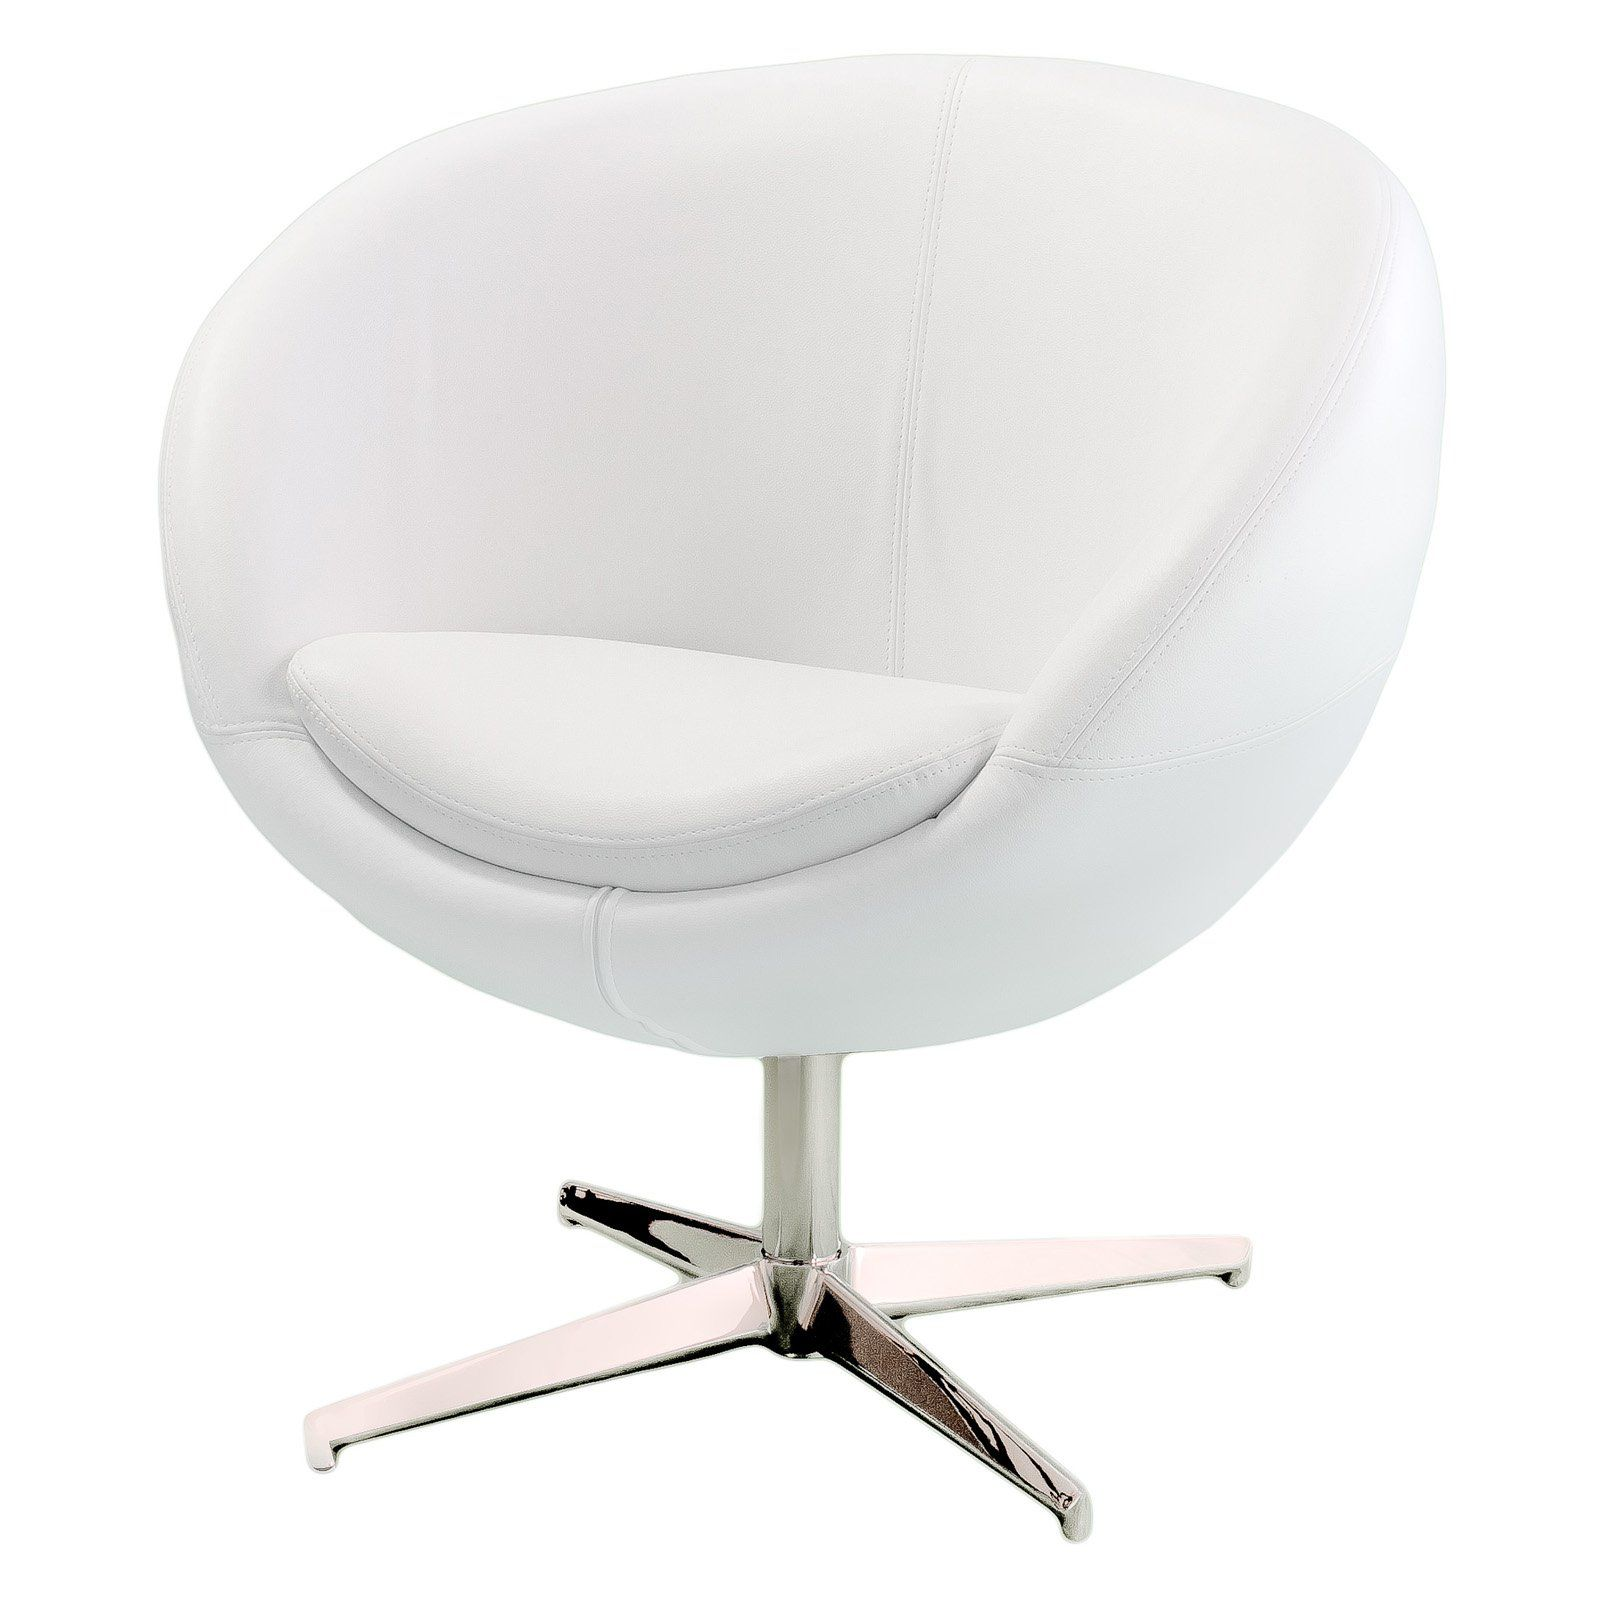 $195 Best Selling Home Decor Modern White Leather Roundback Chair | From  Hayneedle.com